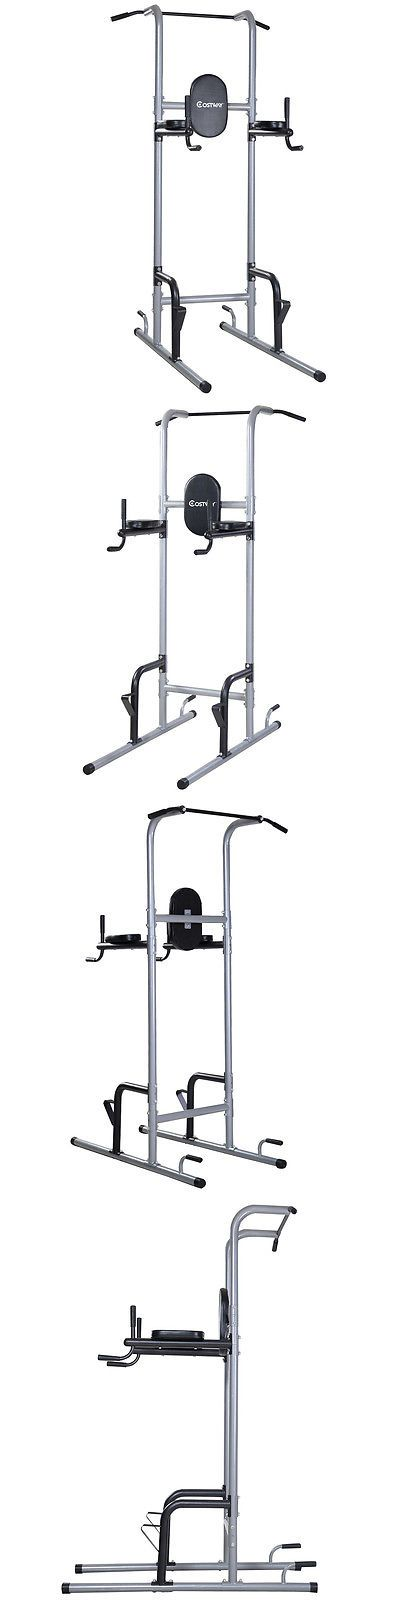 Pull Up Bars 179816: Costway Chin Up Tower Rack Pull Up Stand Bar Leg Raise Home Gym Workout Weight -> BUY IT NOW ONLY: $107.99 on eBay!